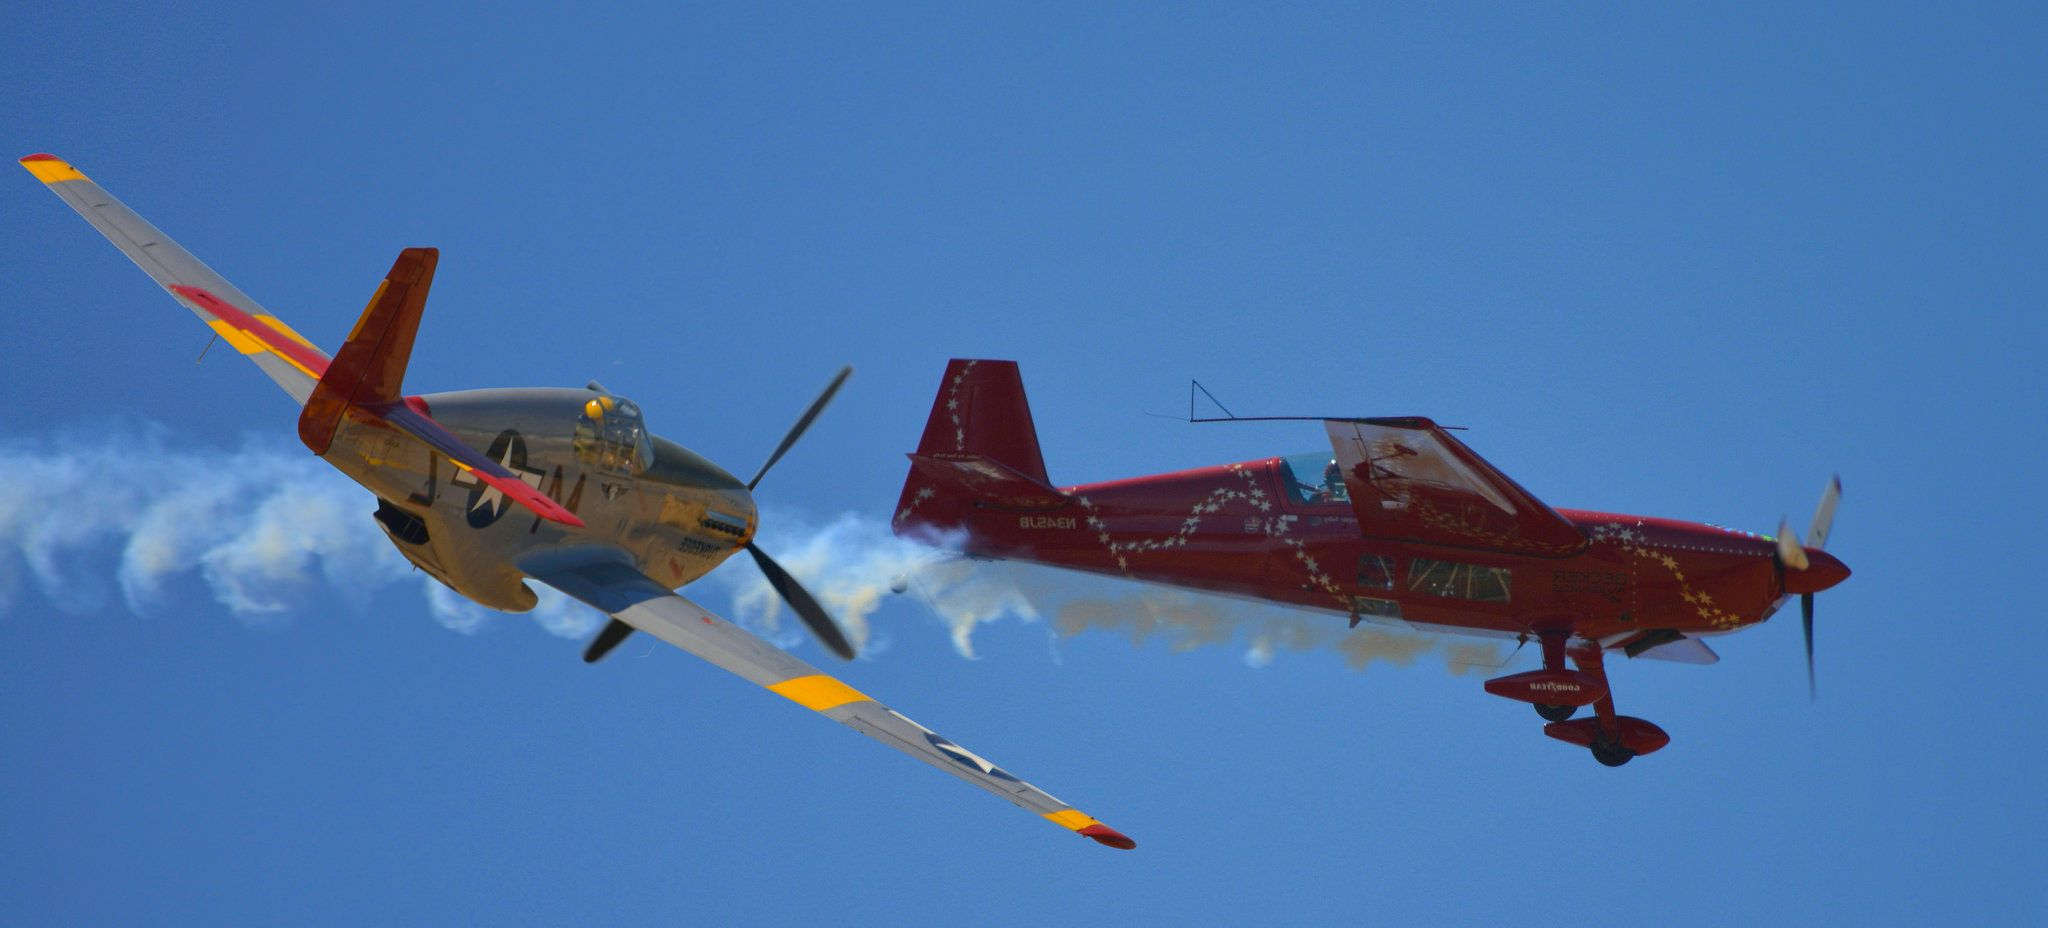 Airshow Stunts | Planes | Air show, Propeller plane, Fighter